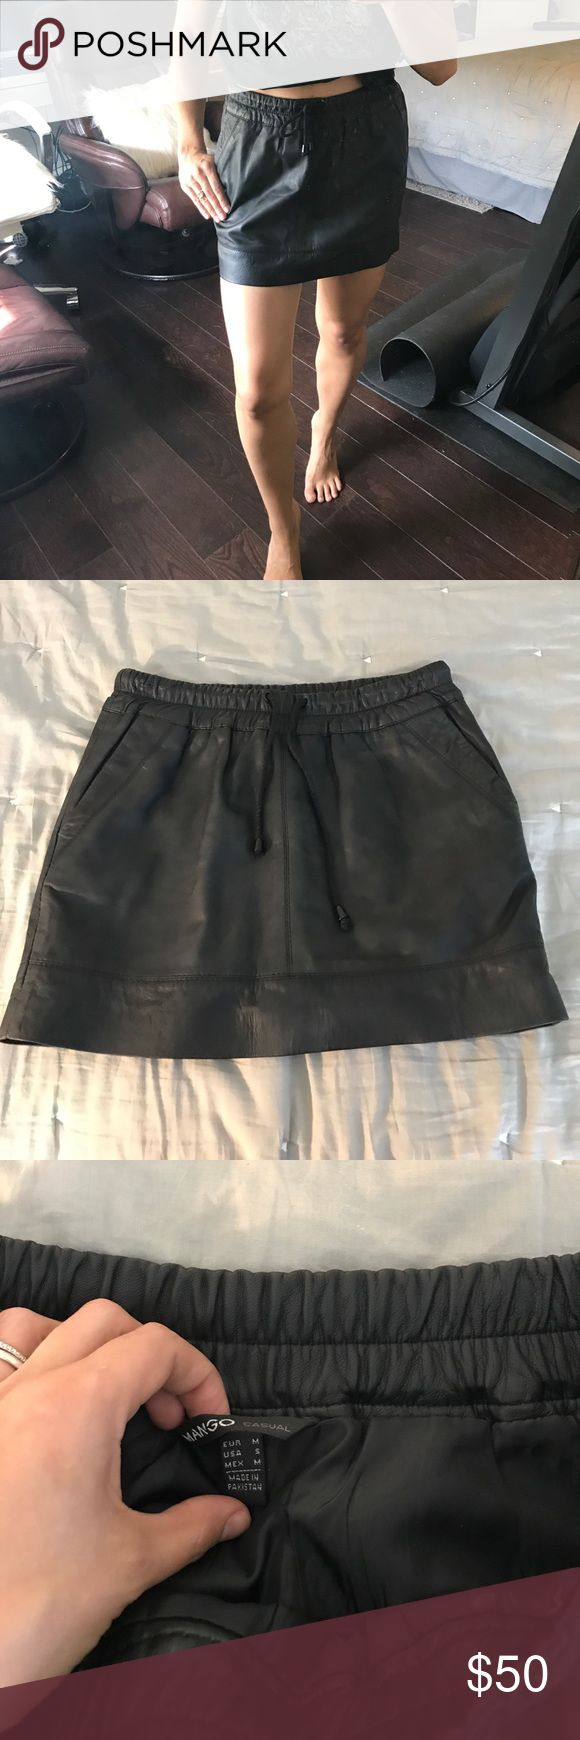 Mango 100% leather skirt Real leather mini skirt. Can be dressed up or worn casual with sneakers and tshirt. Super versatile and cute! Mango Skirts Mini